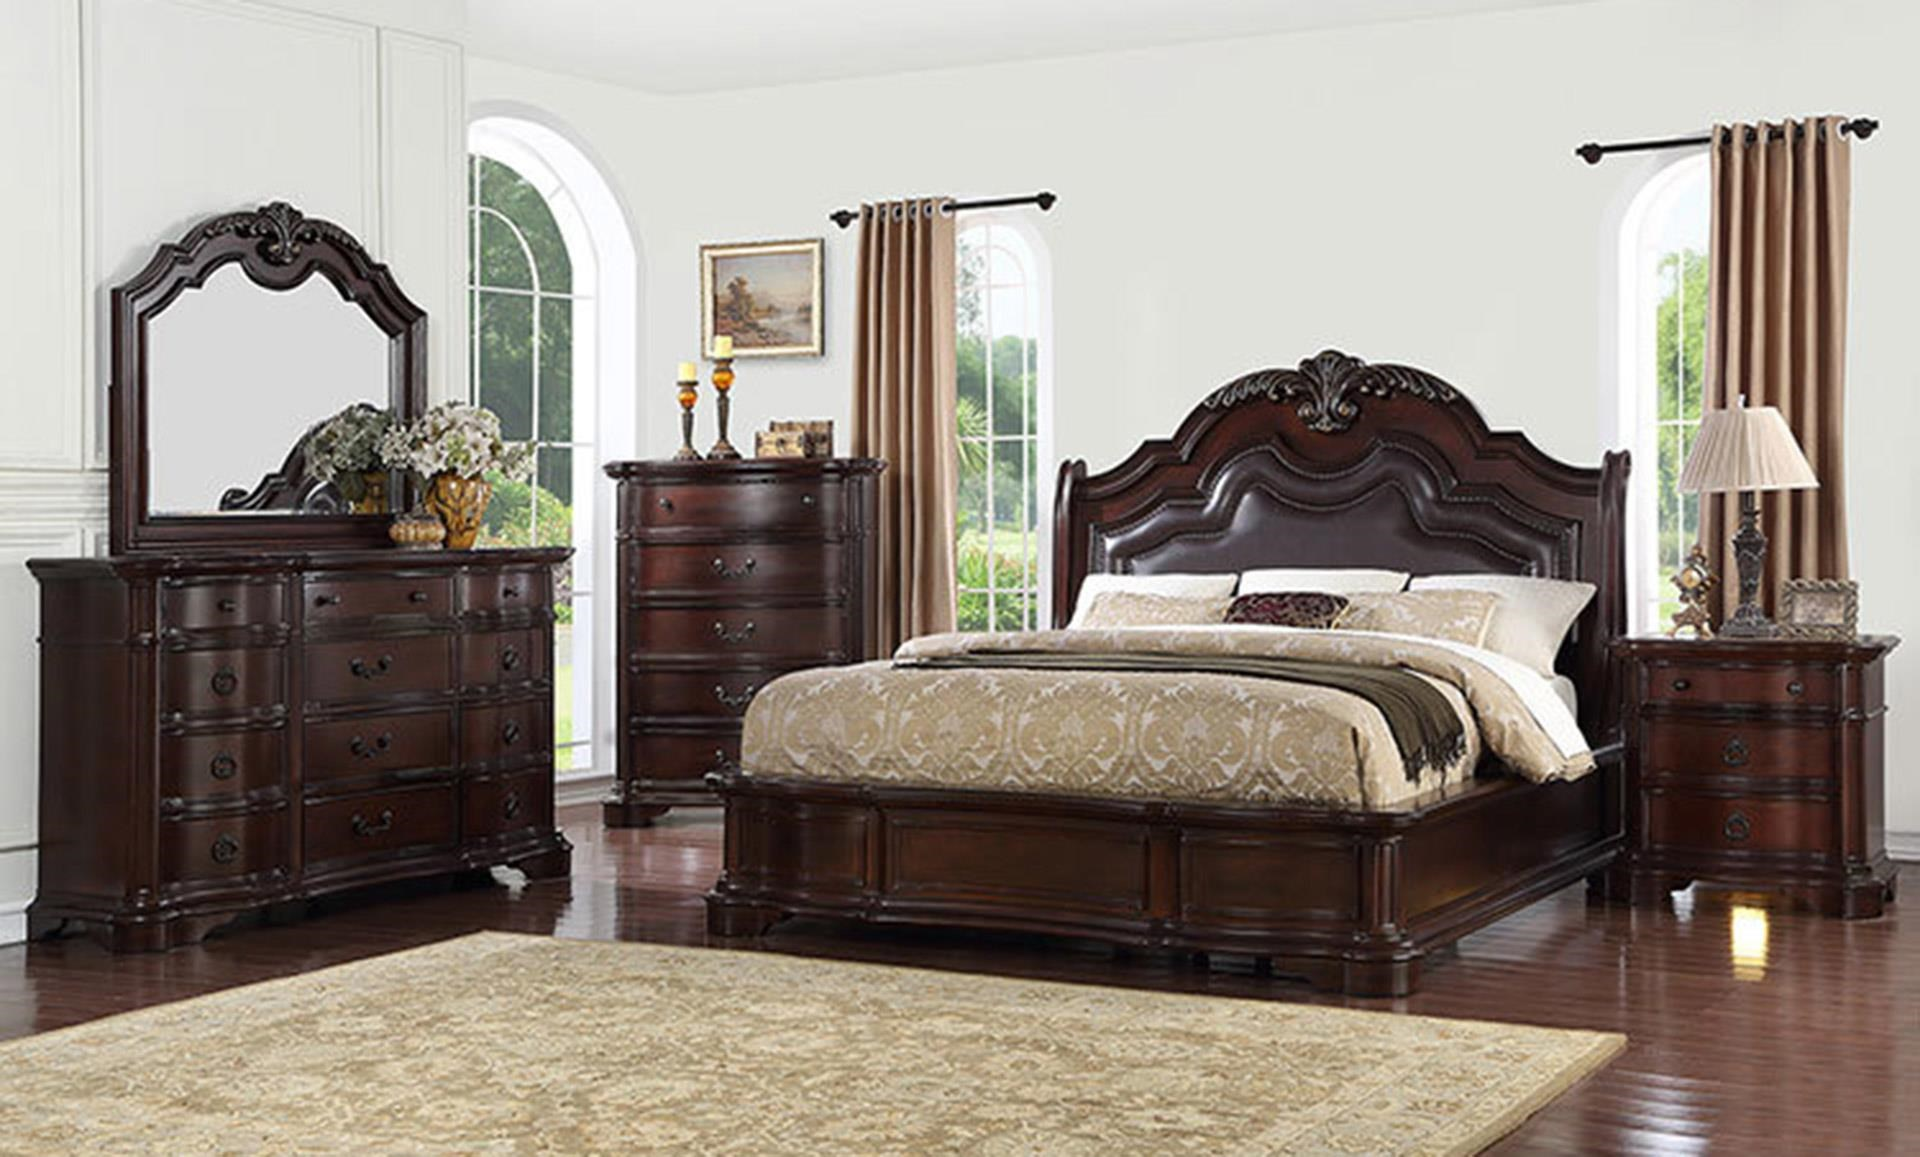 King Bed, Dresser, Mirror, and Nightstand with USB Port & Nightlight